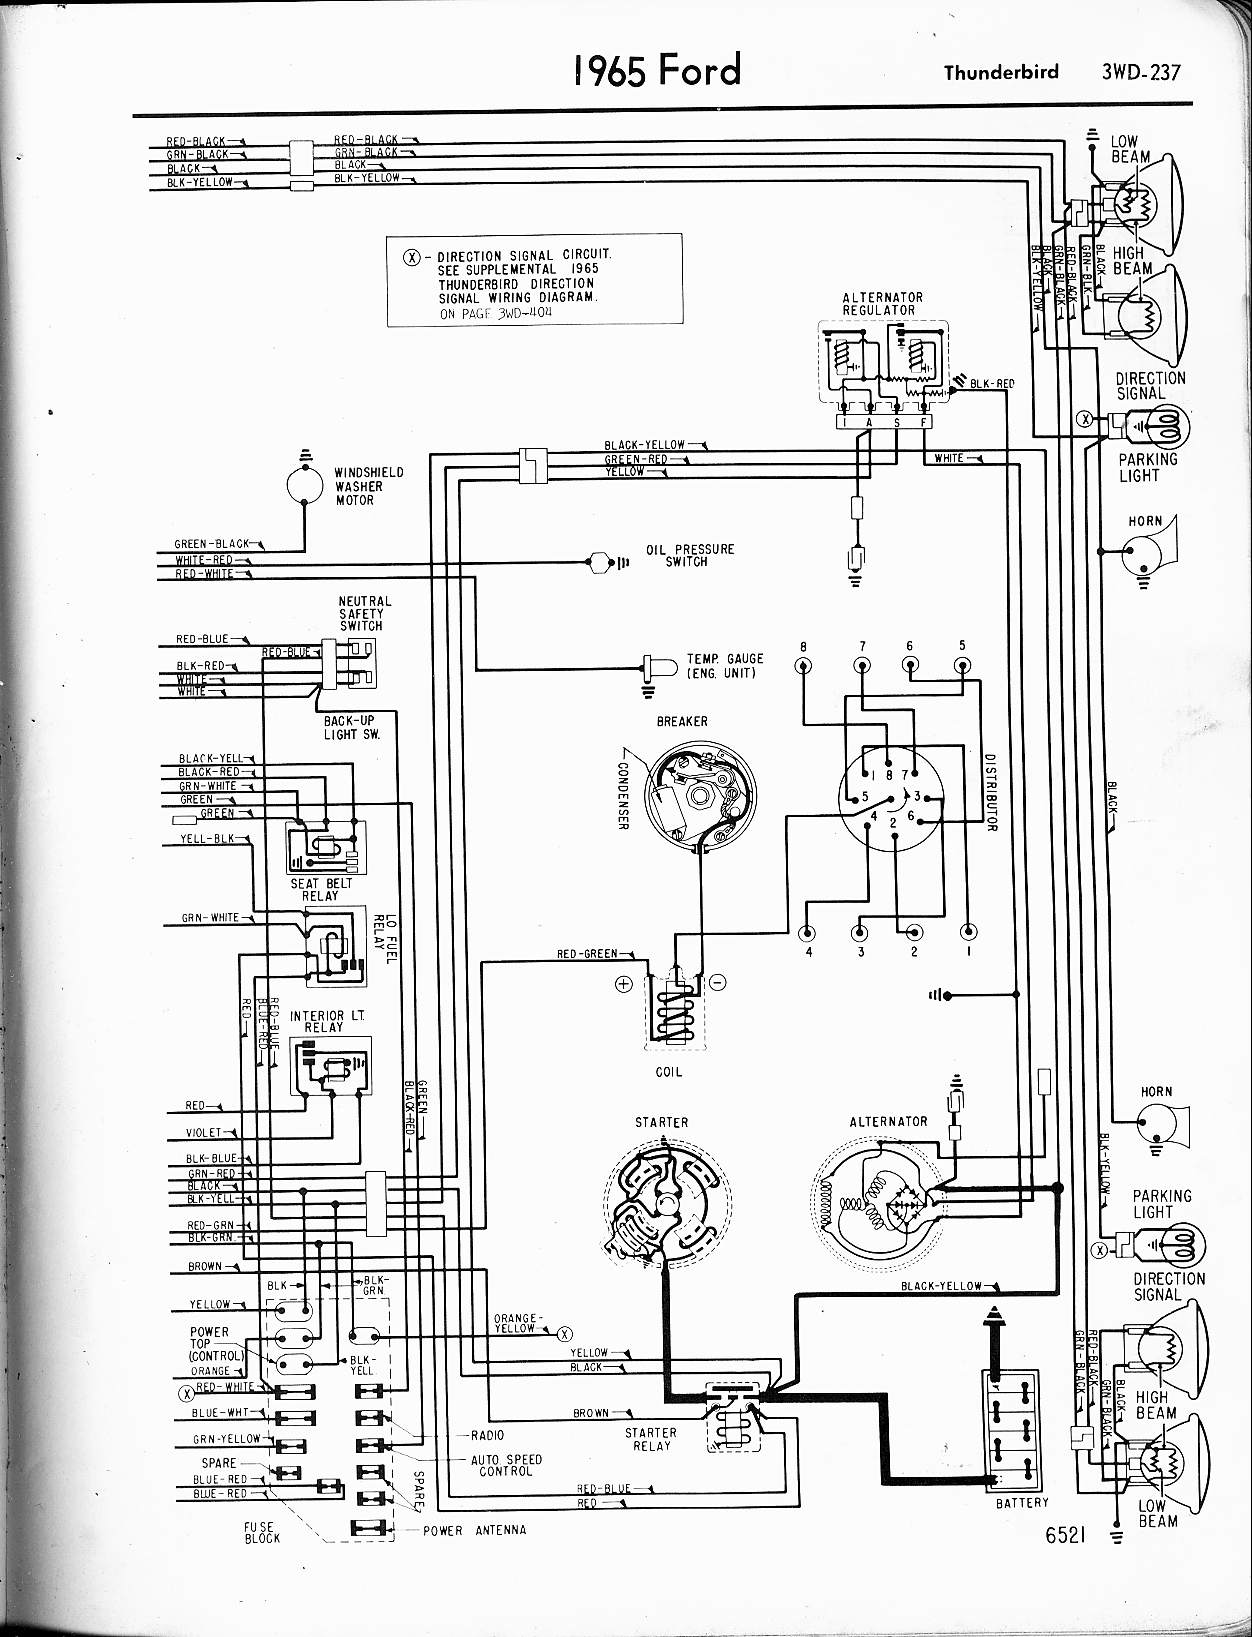 MWire5765 237 57 65 ford wiring diagrams Ford E 350 Wiring Diagrams at edmiracle.co